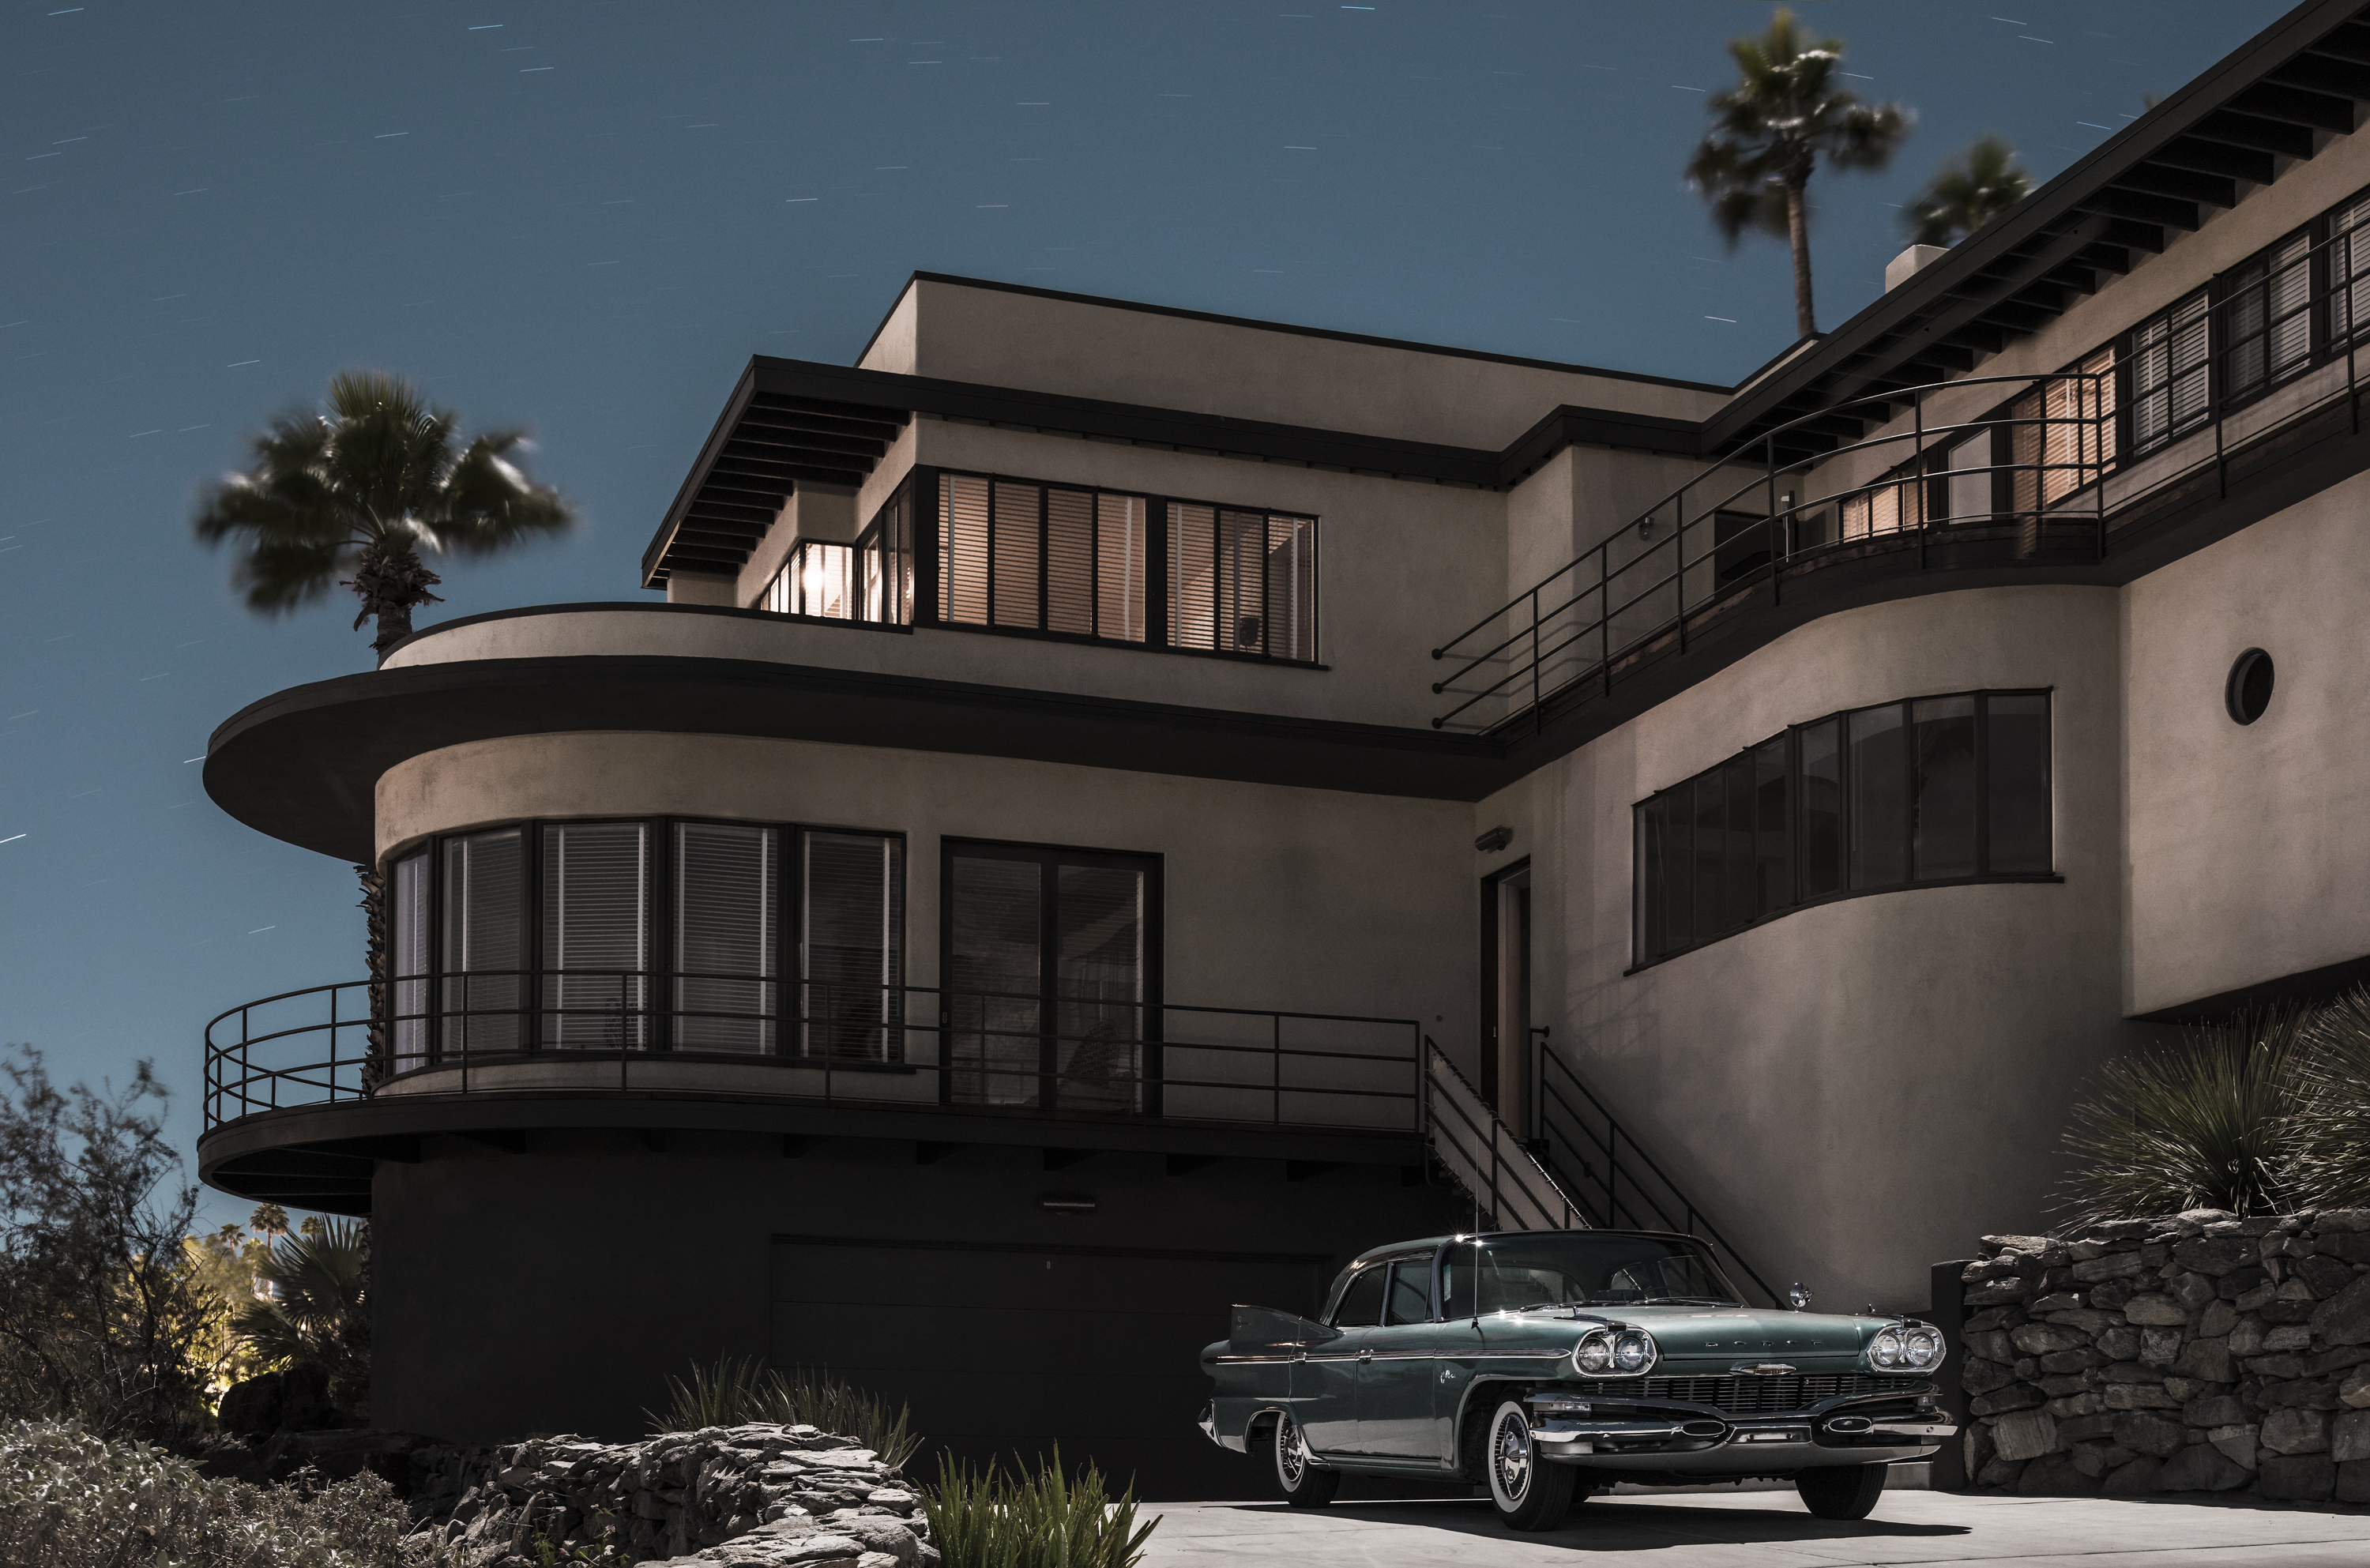 Midnight Modern Palm Springs images